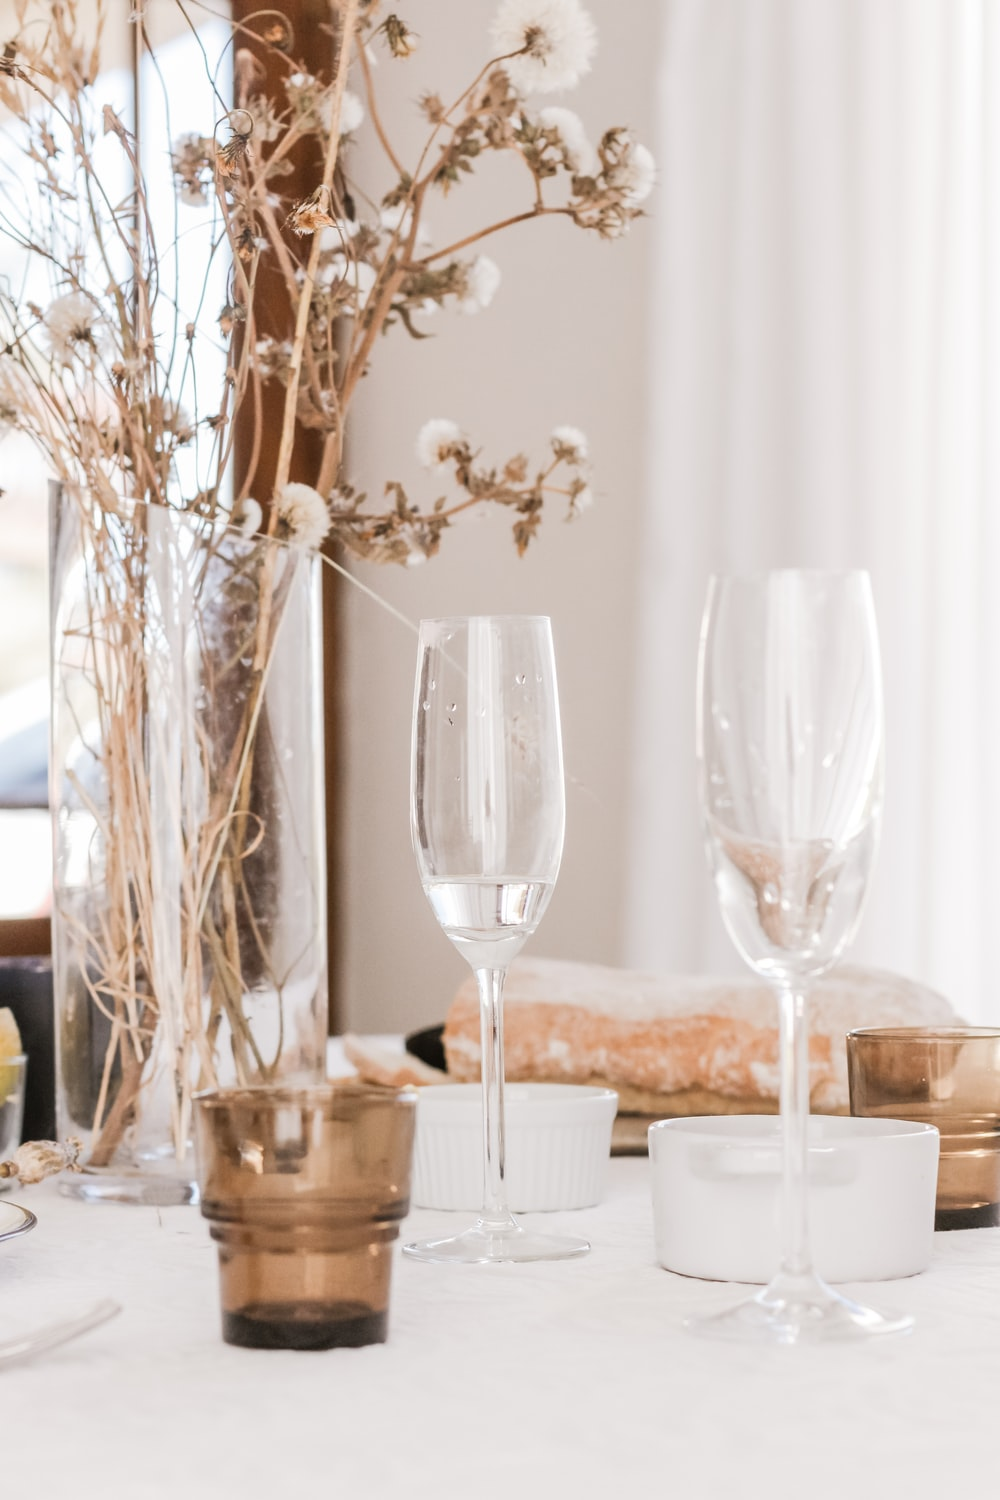 champagne glasses beside flower centerpiece